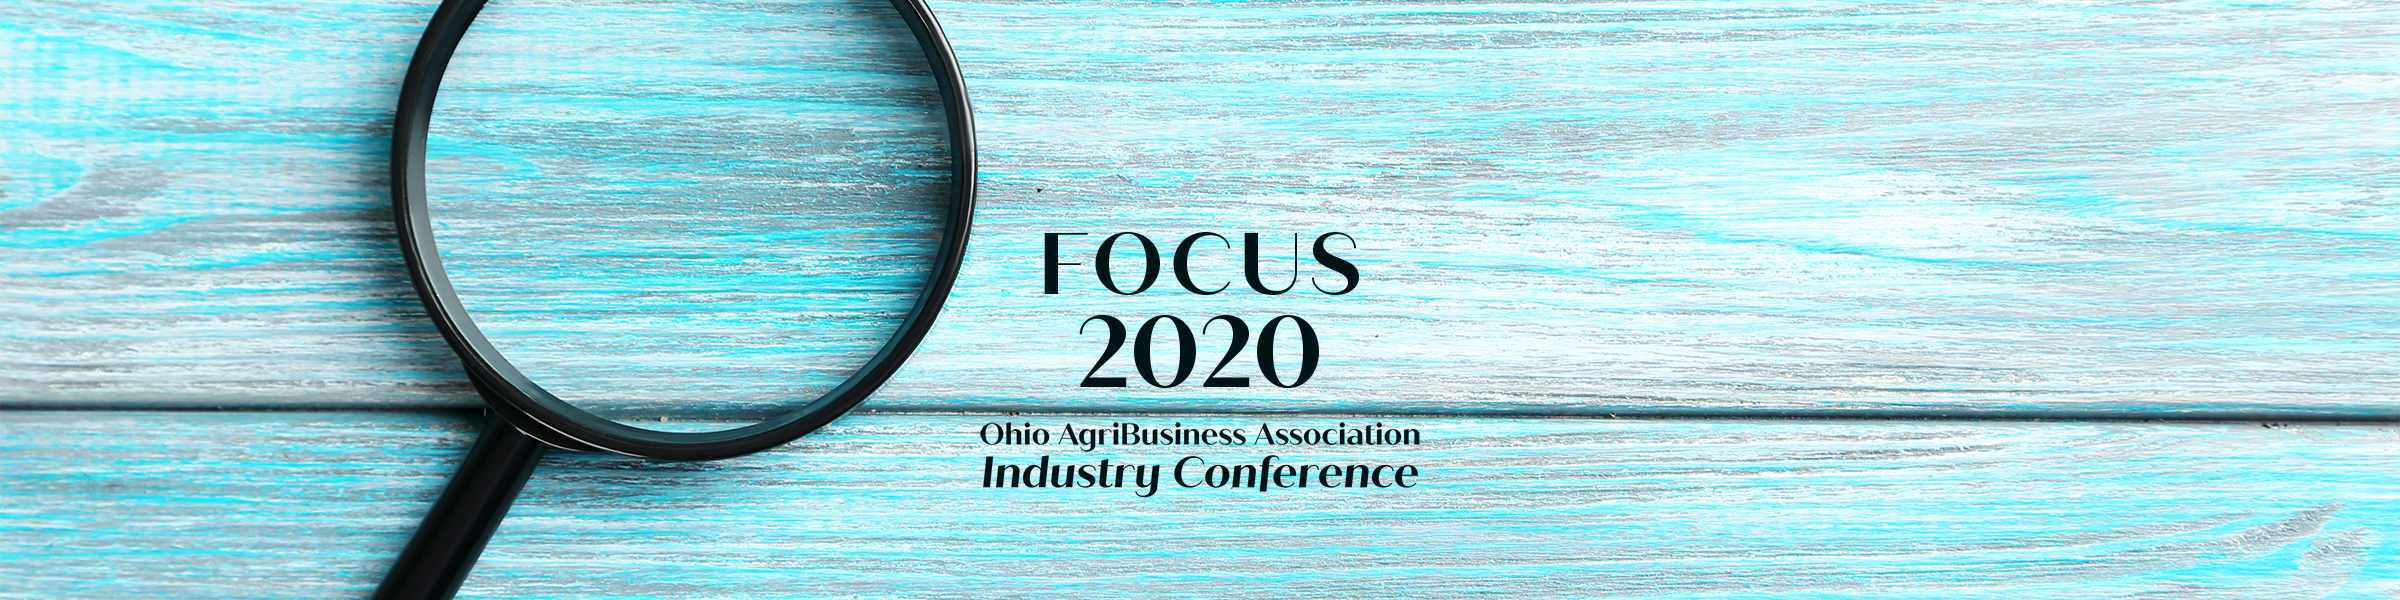 Focus2020 Conference Header